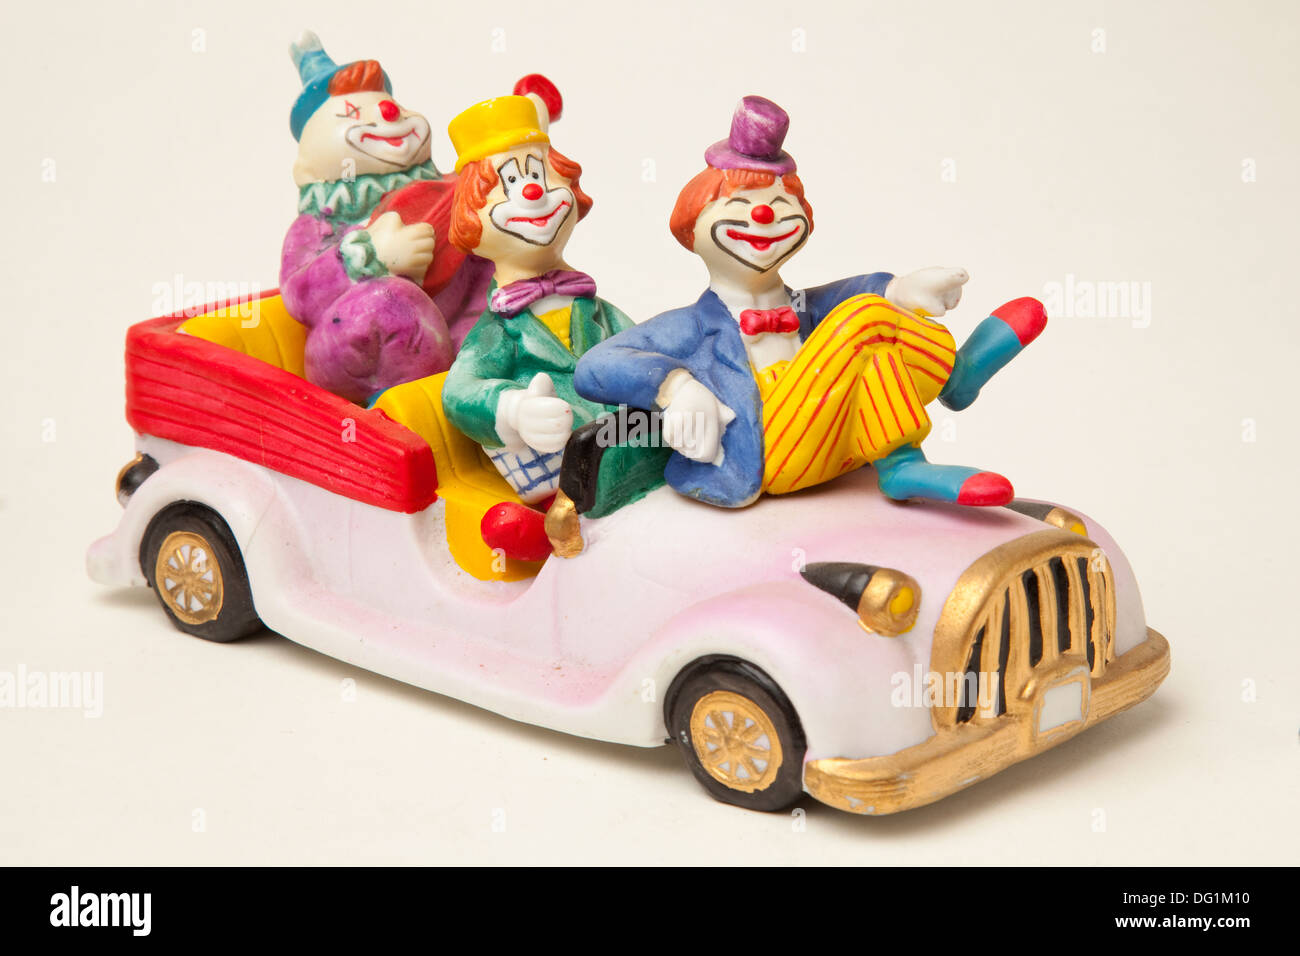 Clowns in a pink car - Stock Image